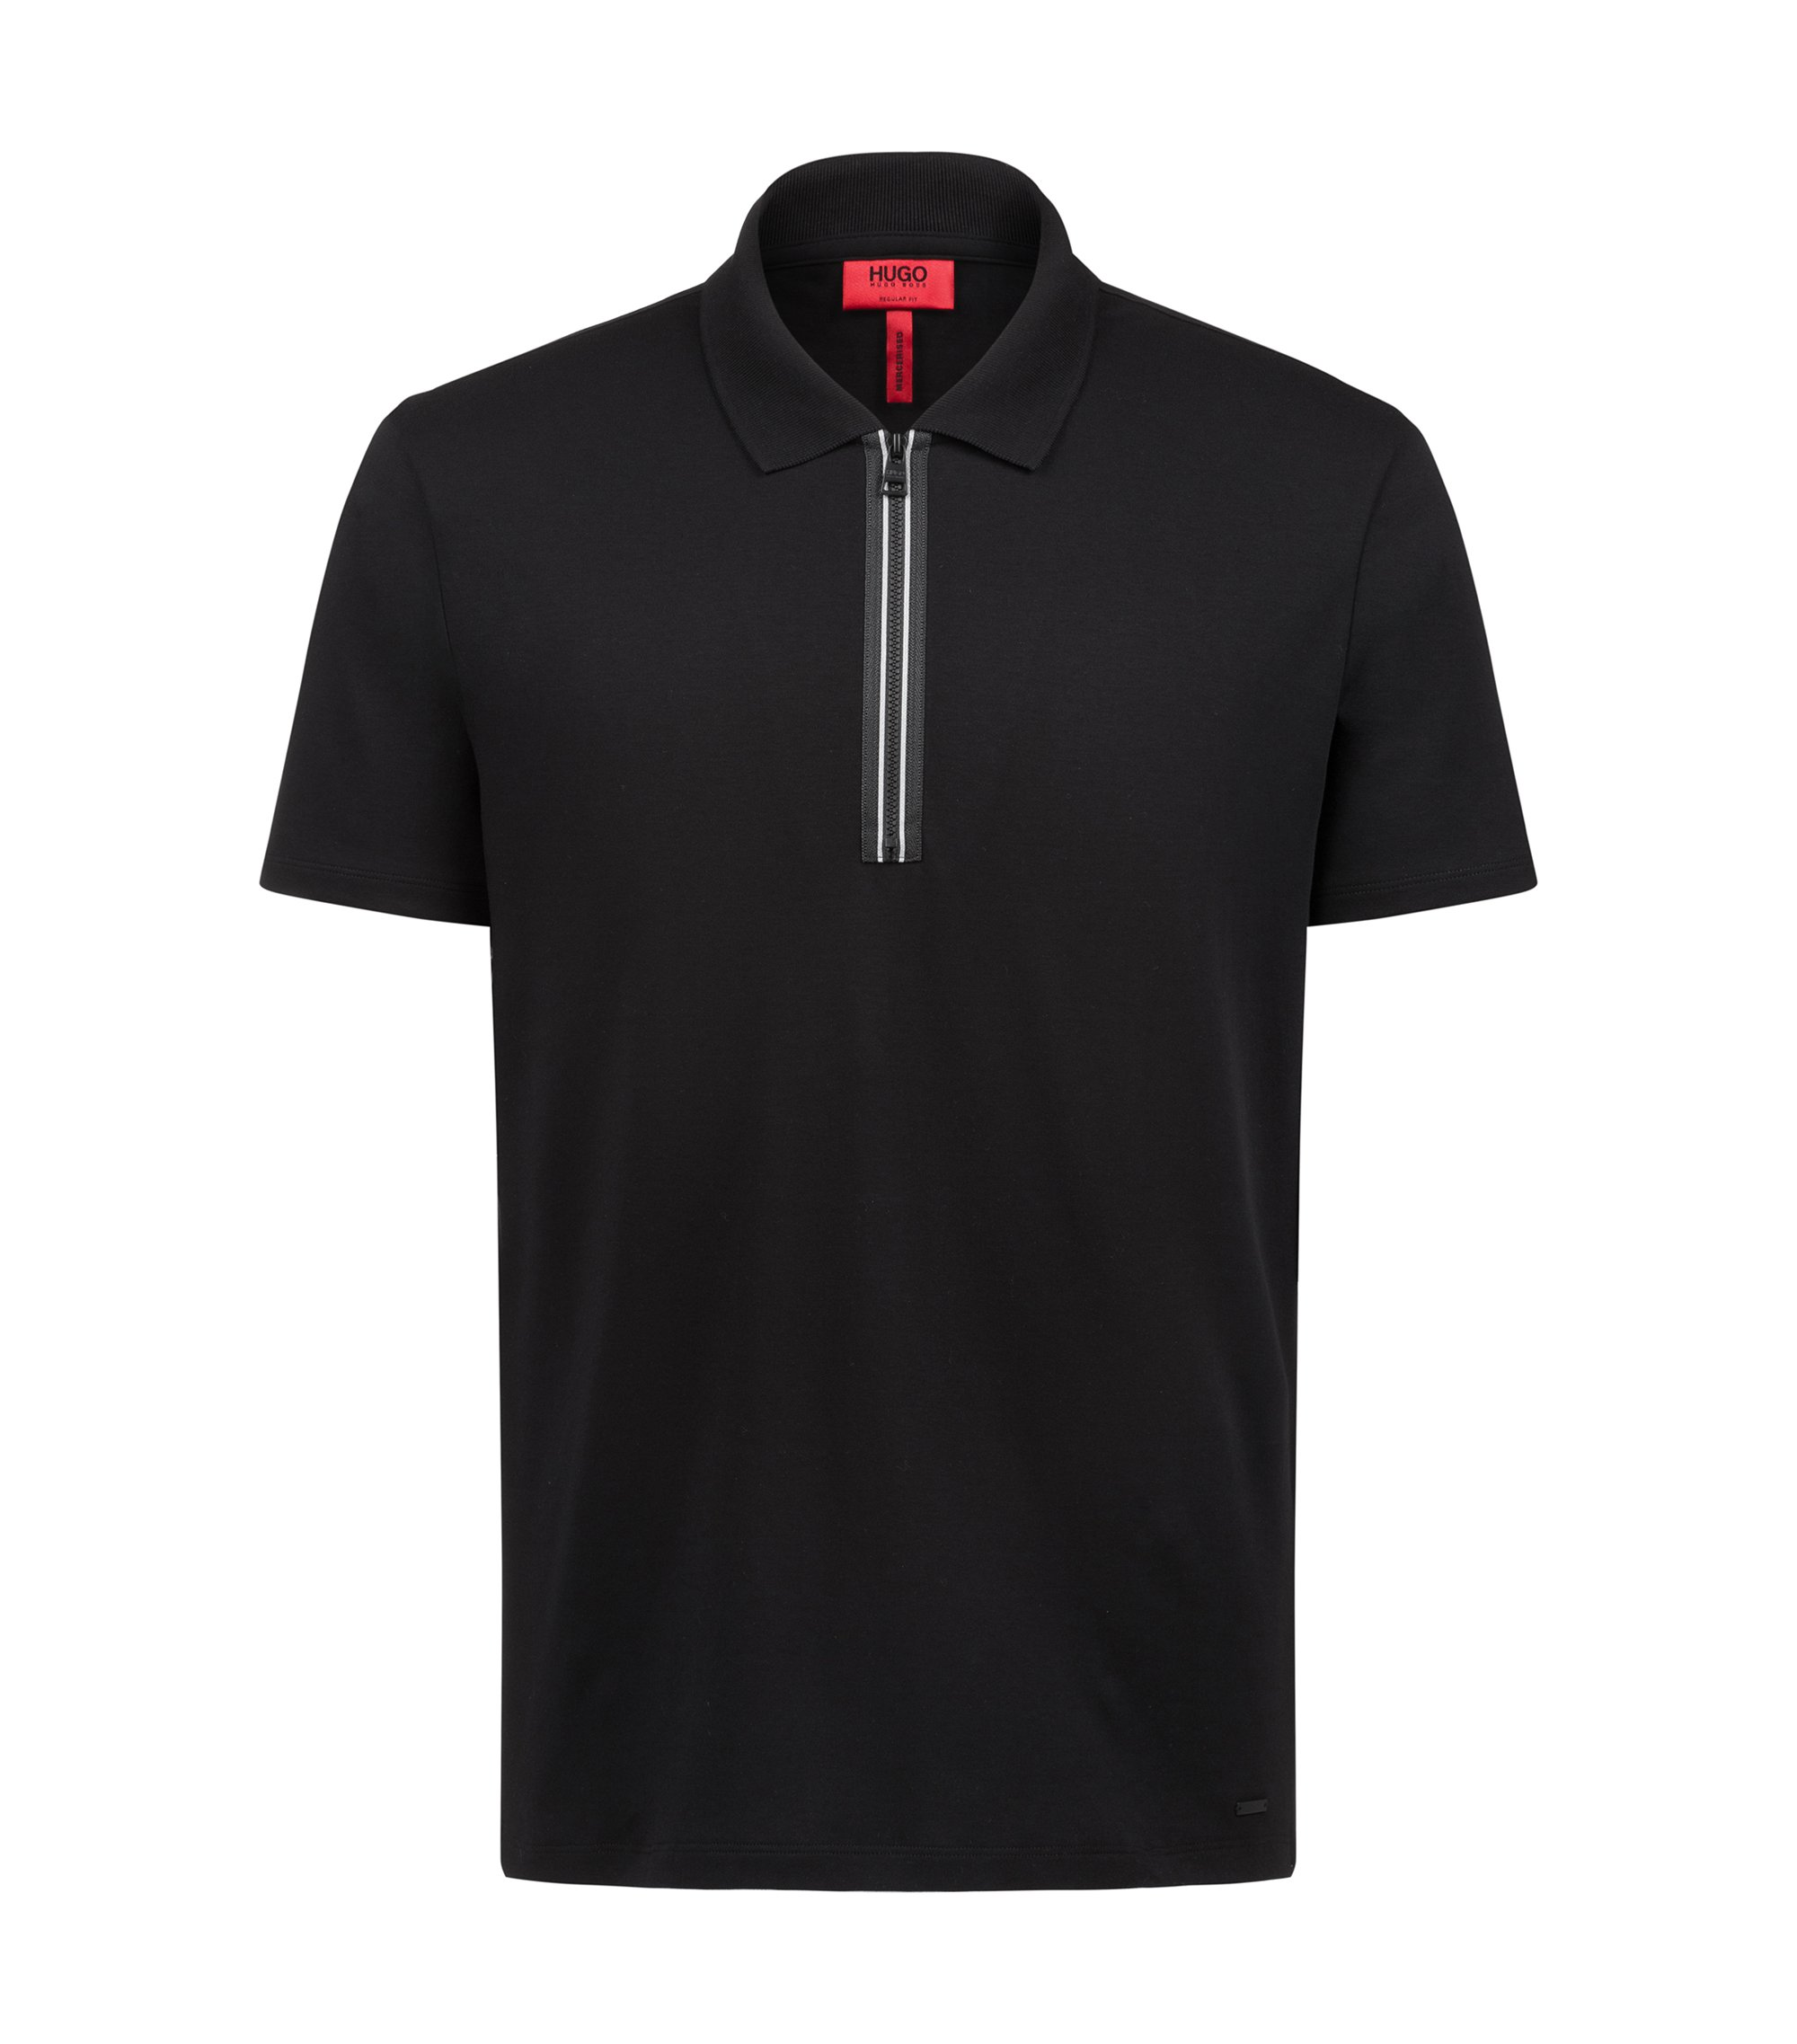 Polo shirt in interlock cotton with contrast zip detail, Black